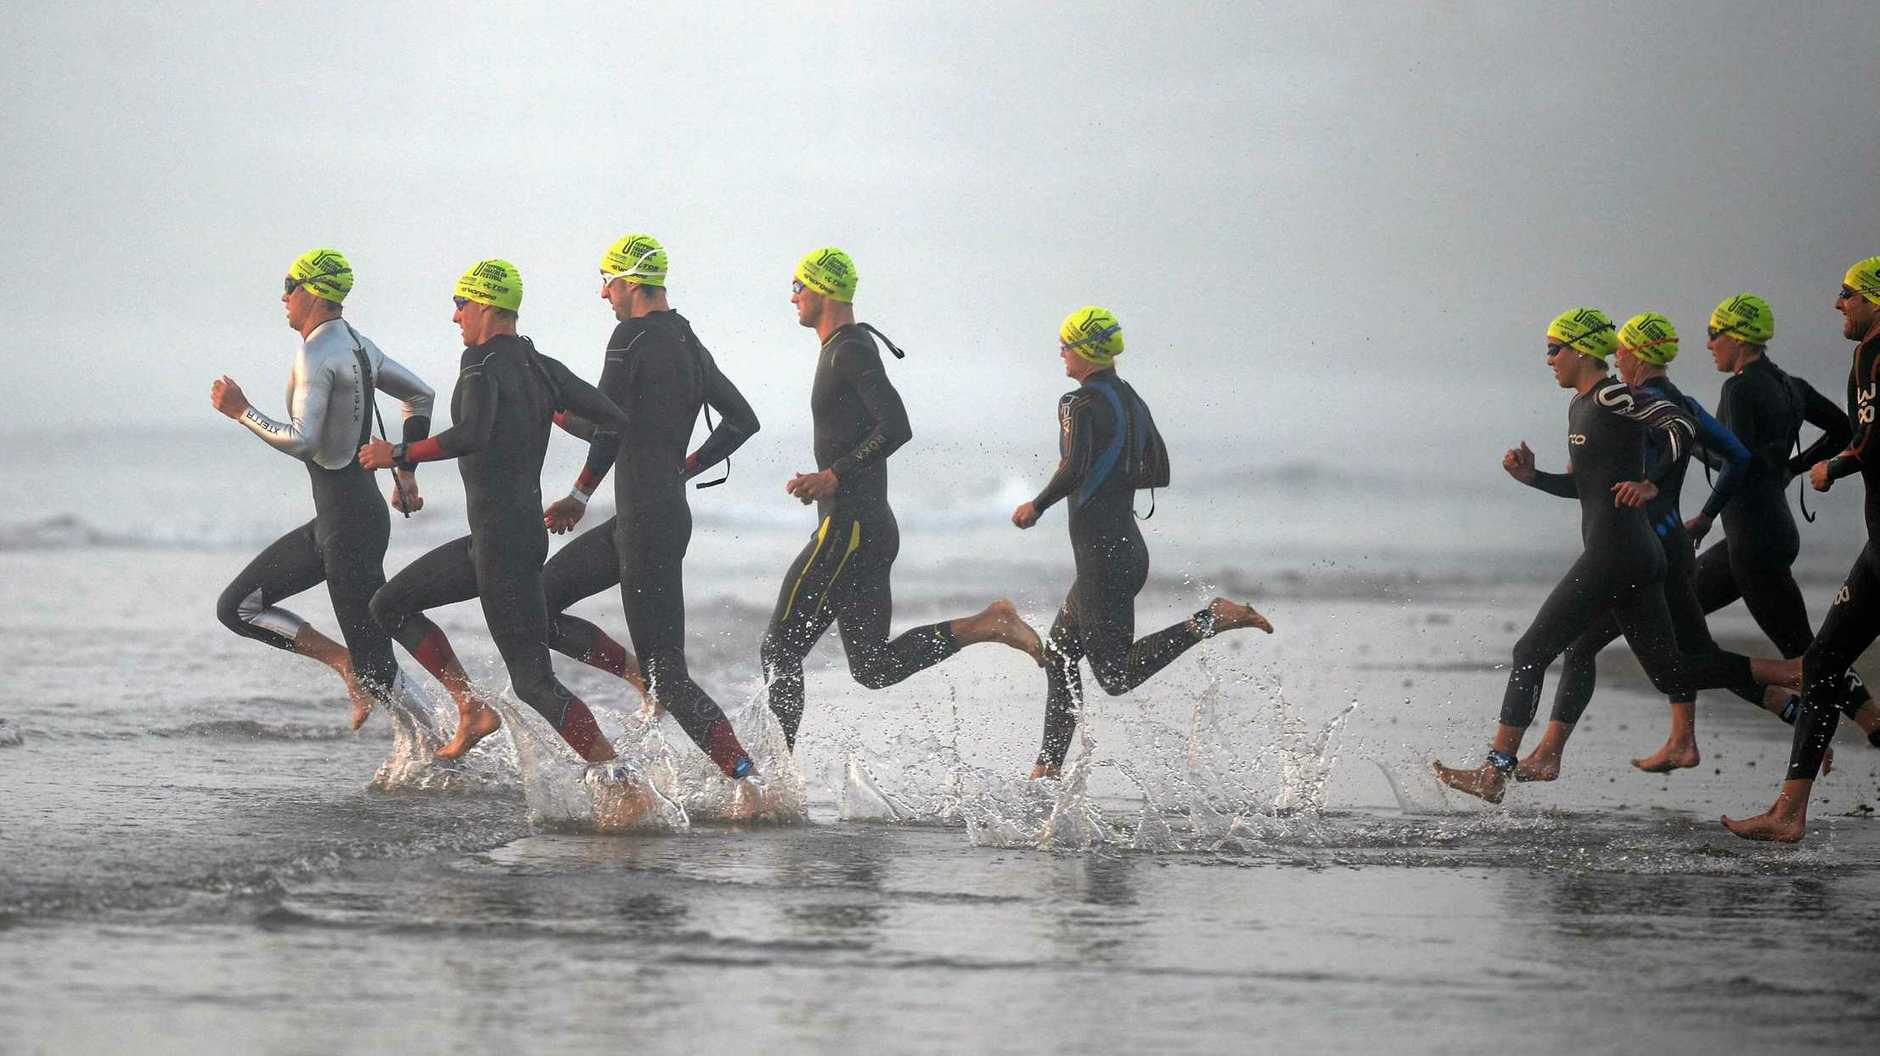 Hundreds of athletes will compete in the Yeppoon Triathlon Festival this weekend.